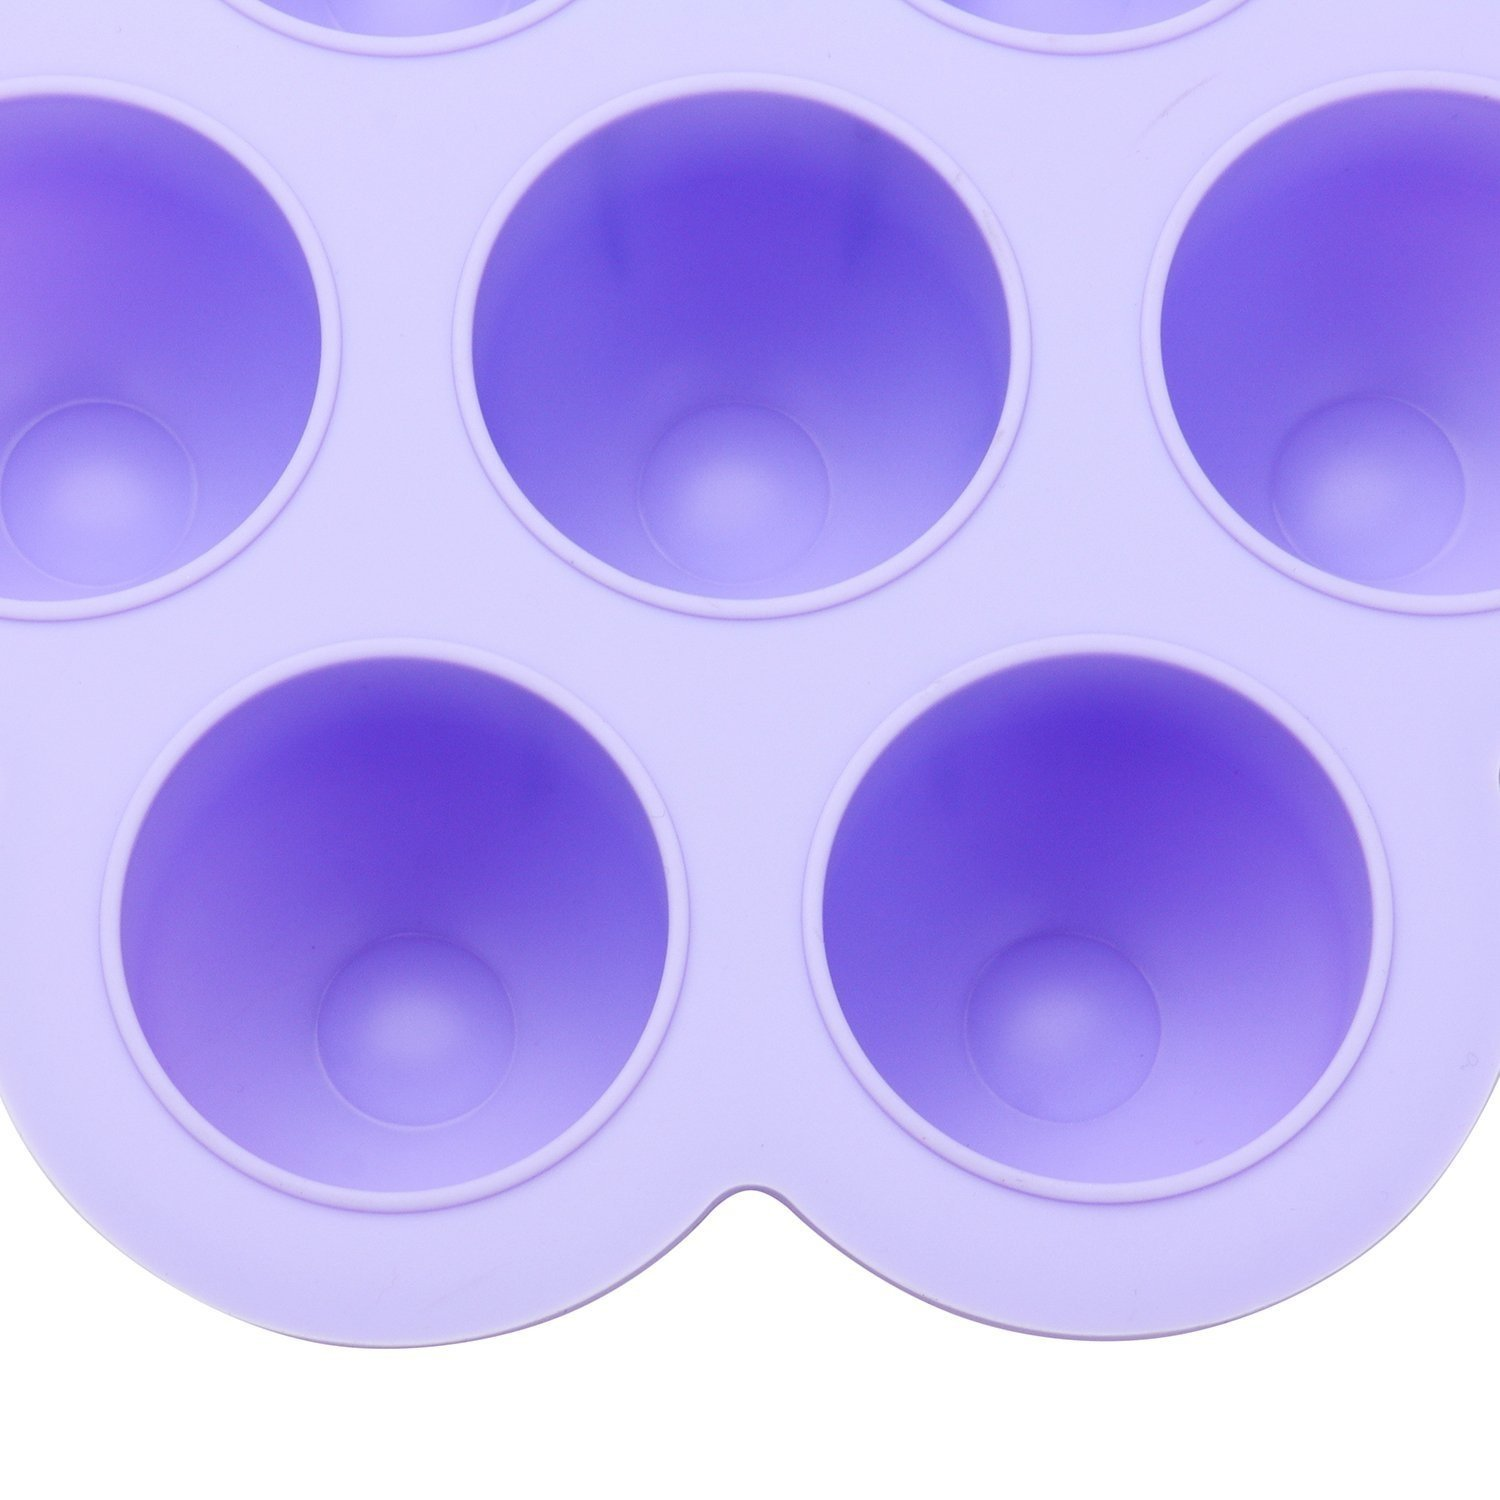 Pensenion Silicone Egg Bites Mold, Baby Food Storage Container Freezer Tray with Lid, 7 Holes Mold Reusable - Blue